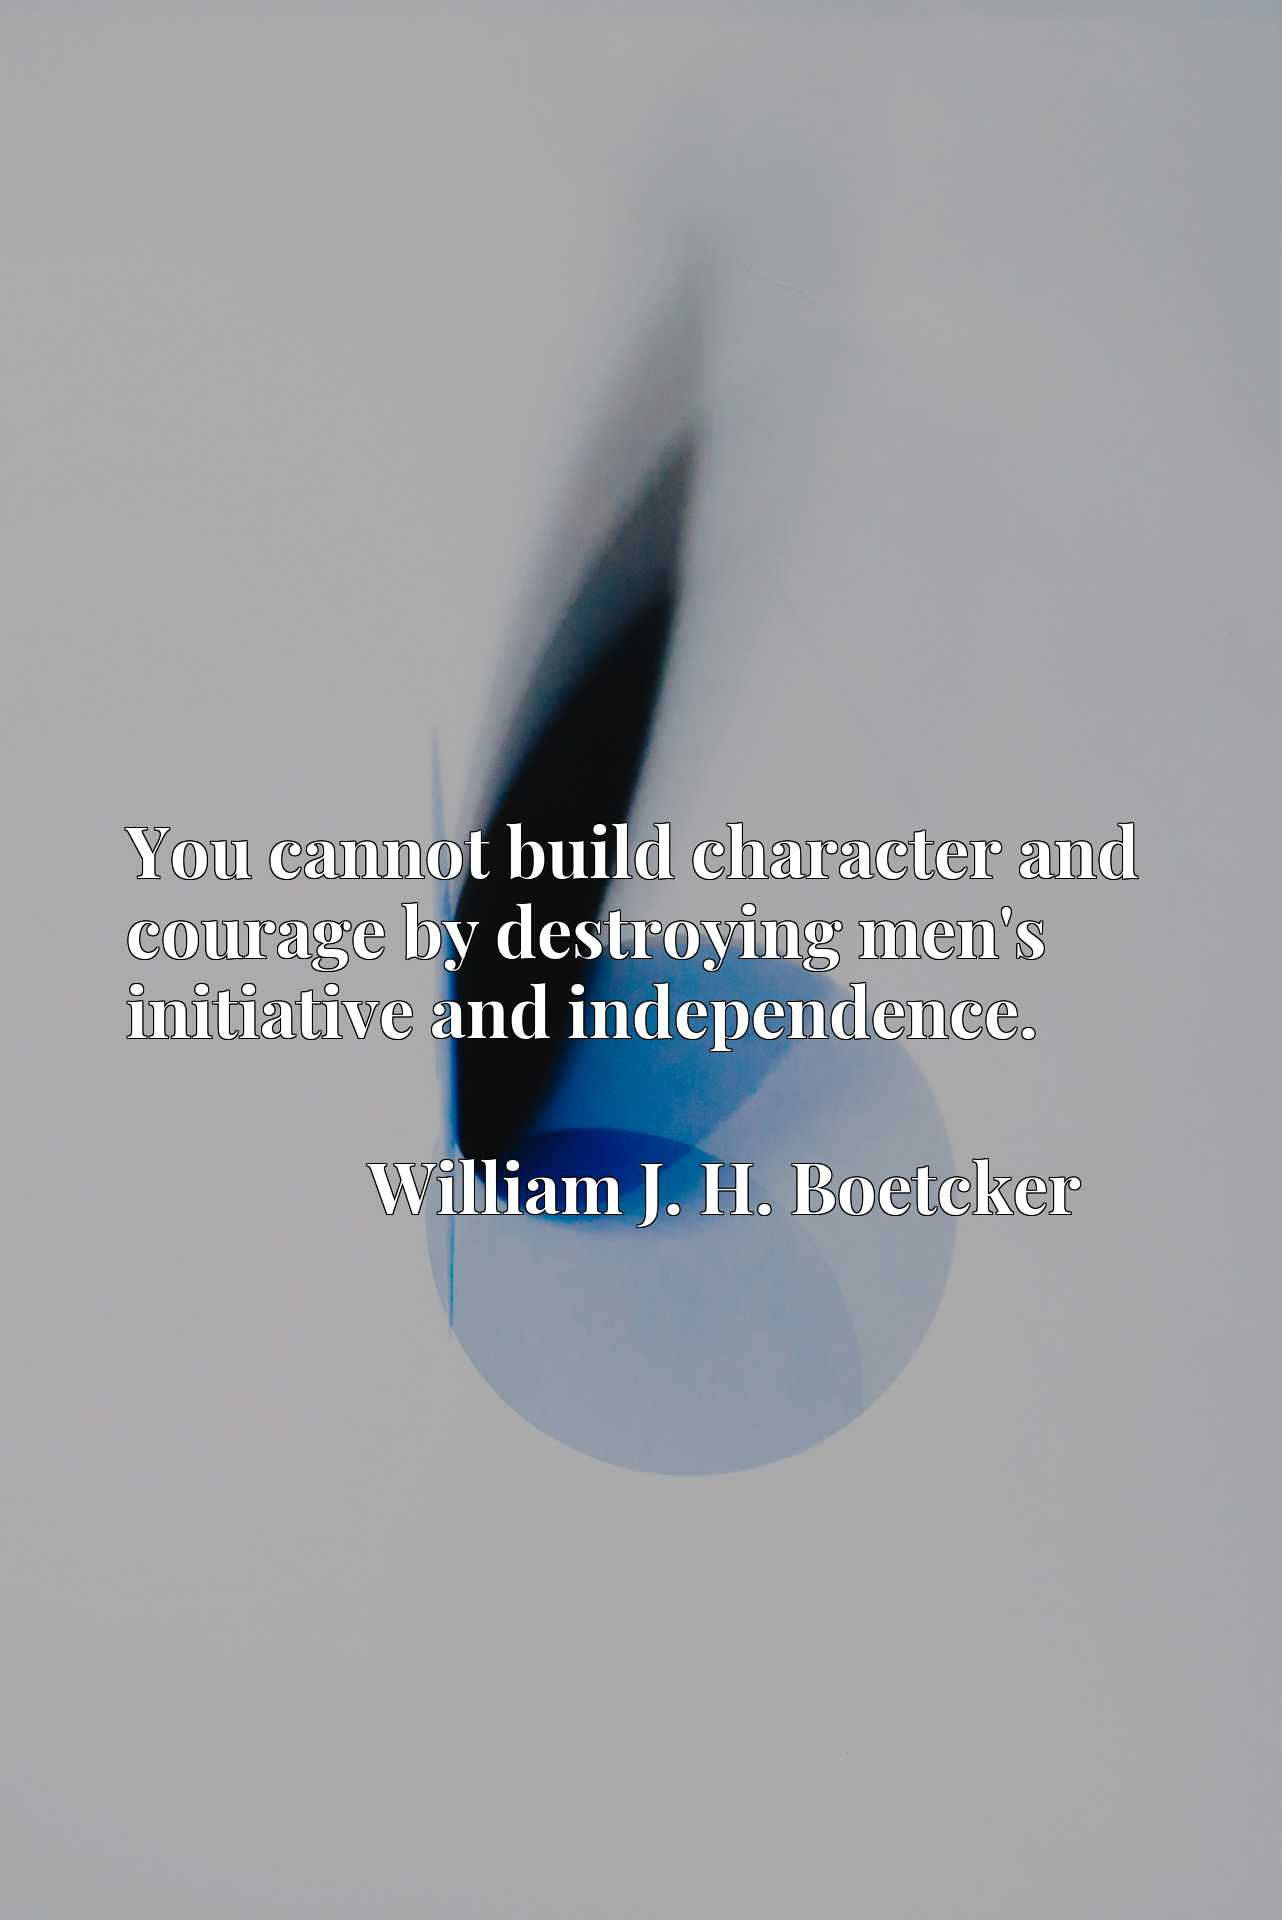 You cannot build character and courage by destroying men's initiative and independence.